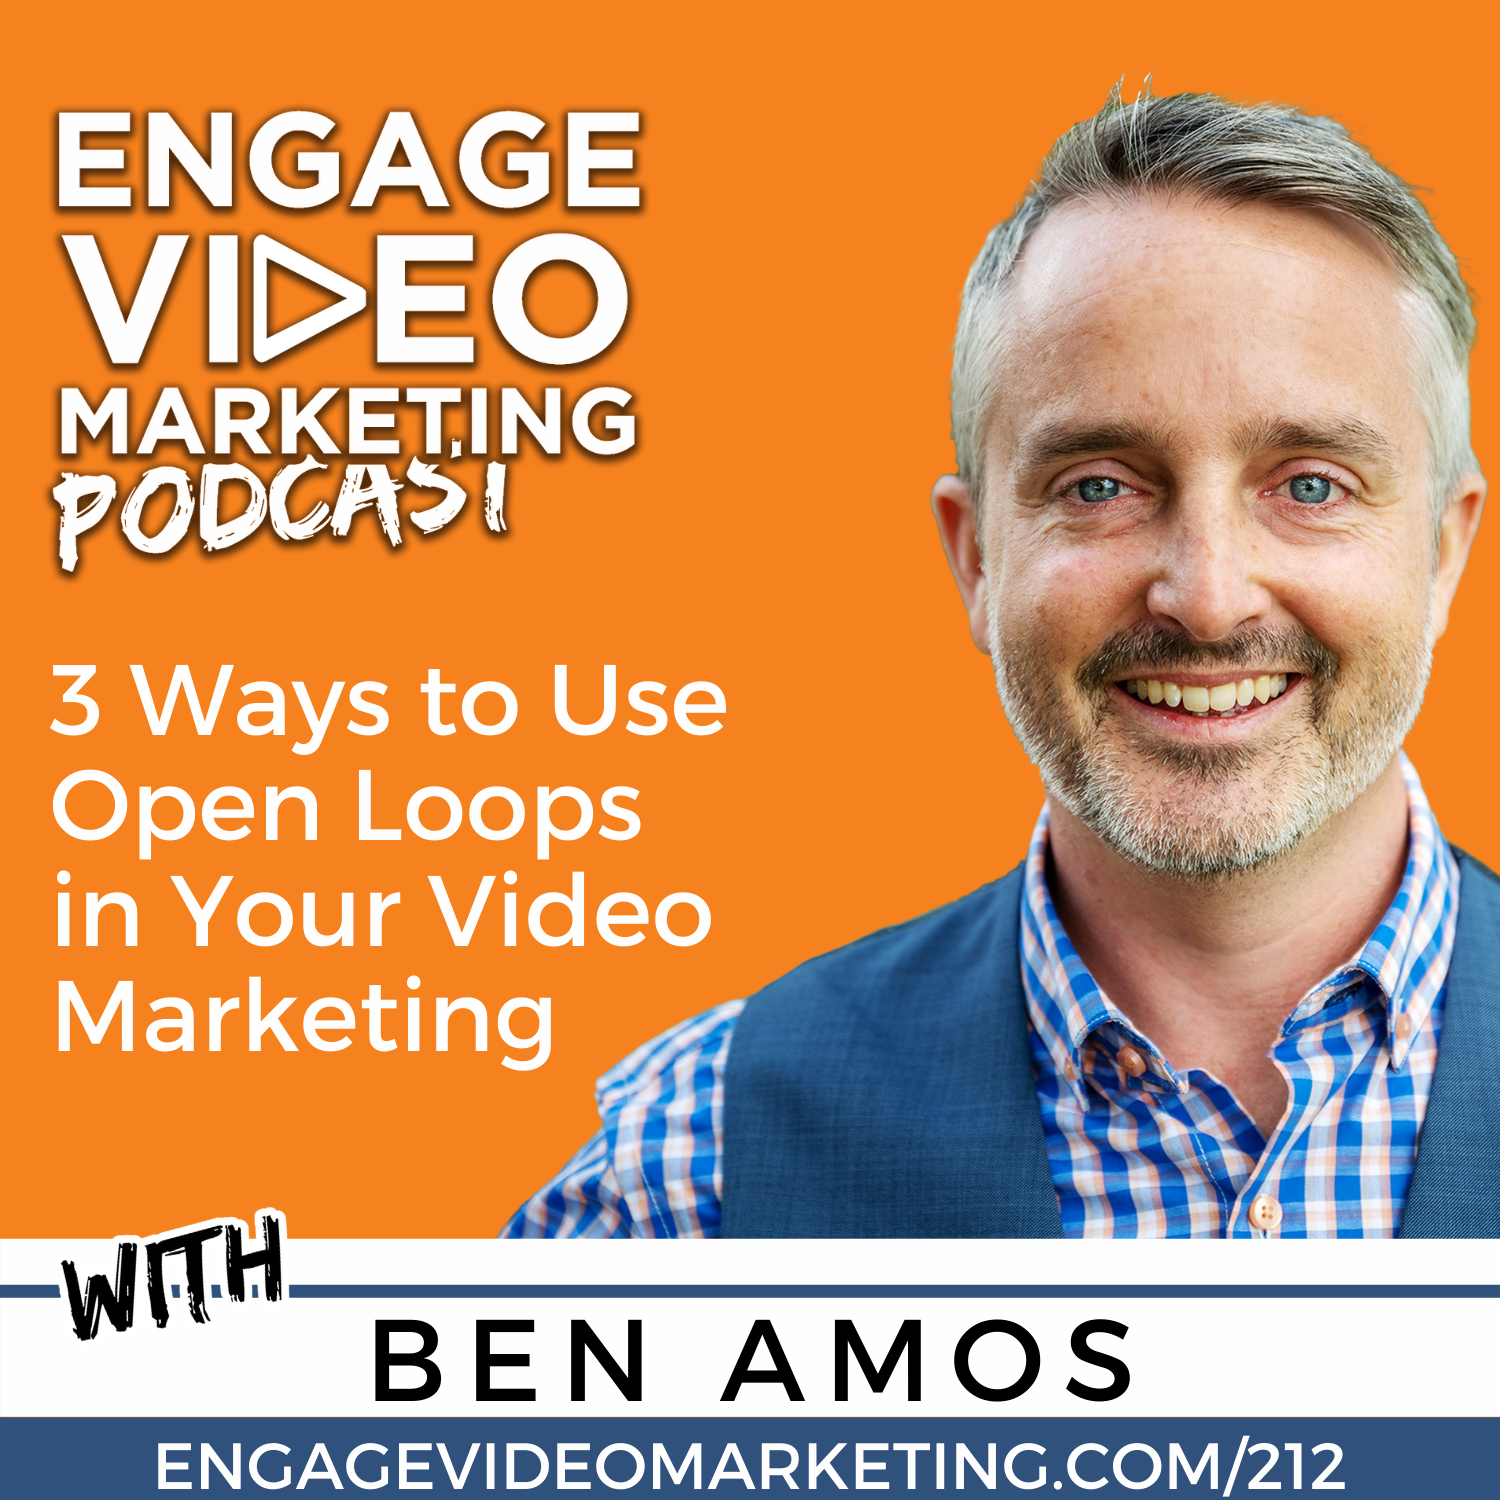 3 Ways to Use Open Loops in Your Video Marketing with Ben Amos